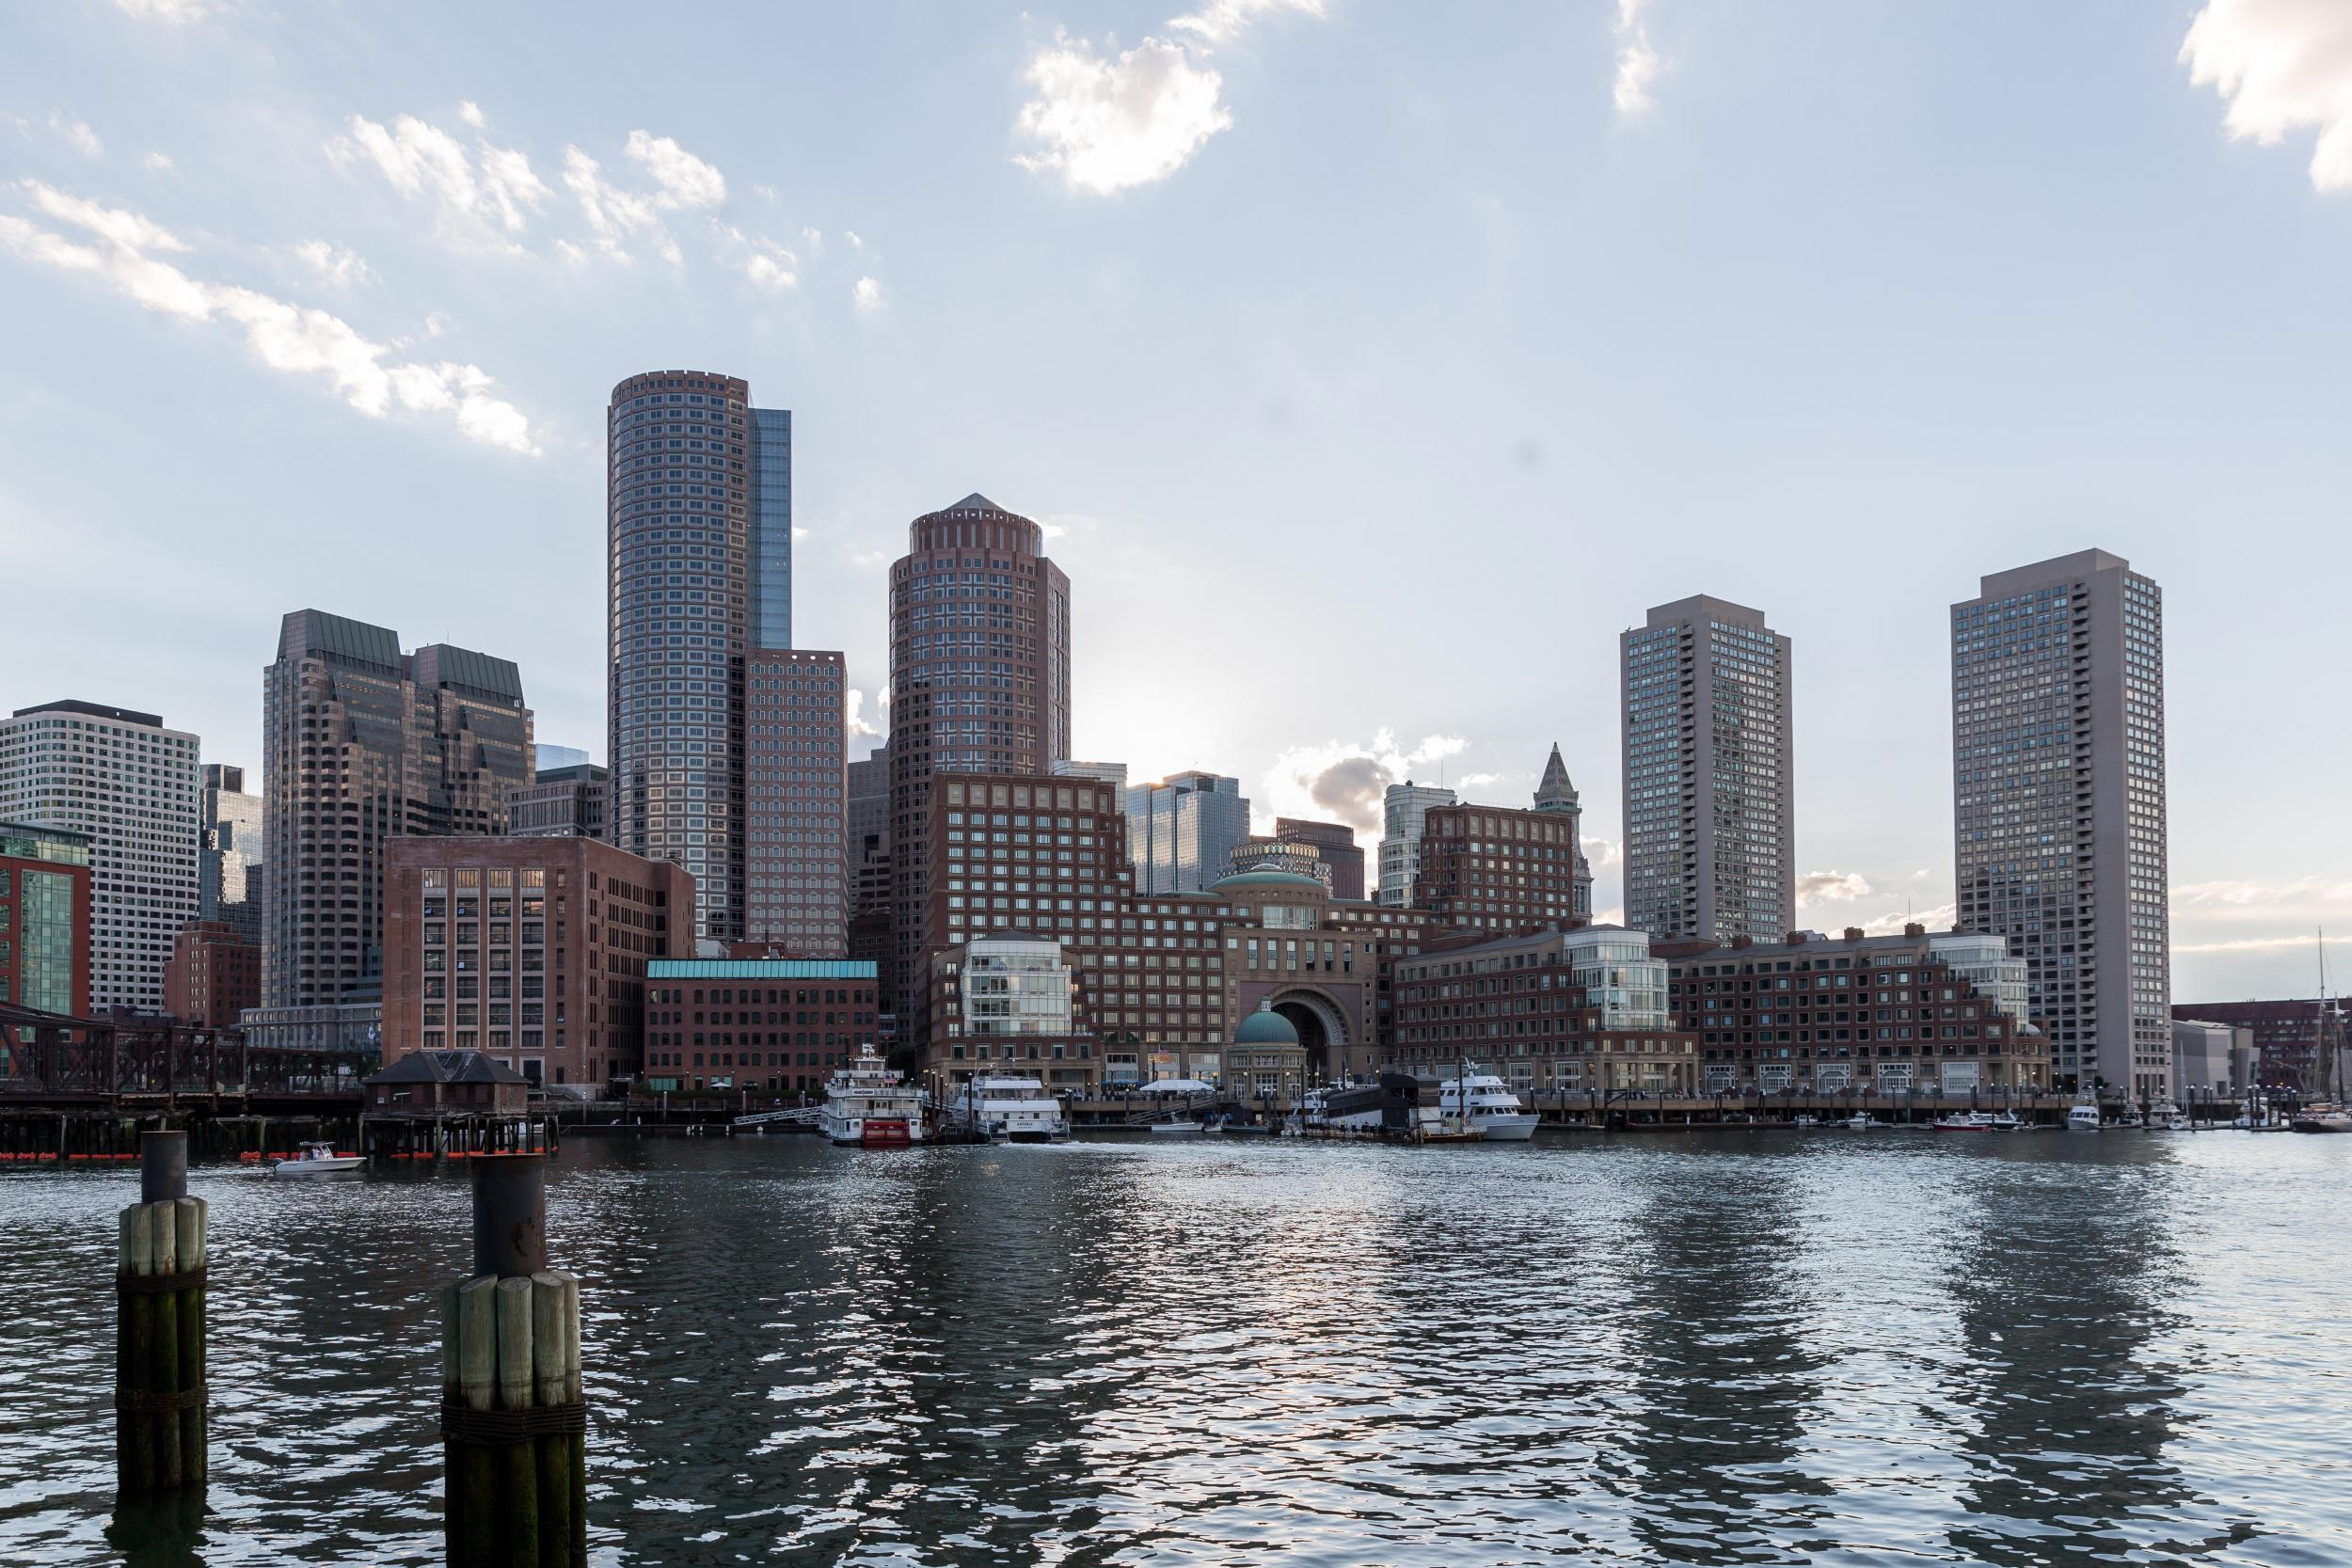 Financial district of Boston, with water in the foreground